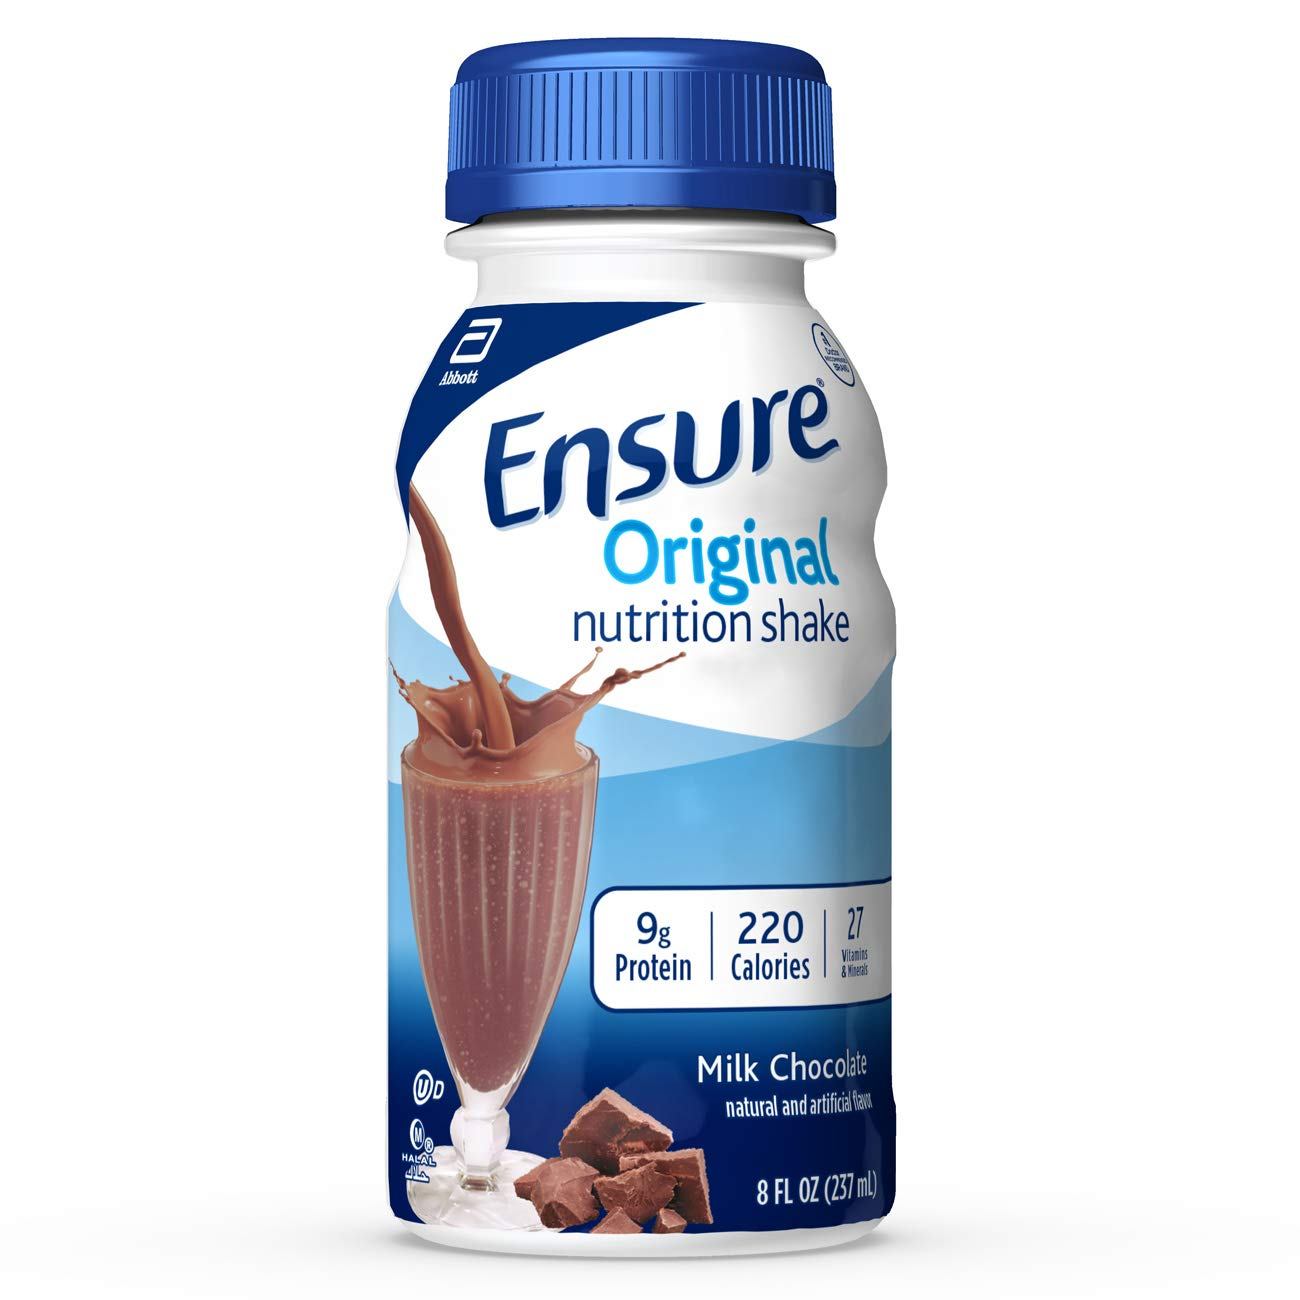 Ensure Original Nutrition Shake with 9 grams of protein, Meal Replacement Shakes, Milk Chocolate, 8 fl oz, 6 Count